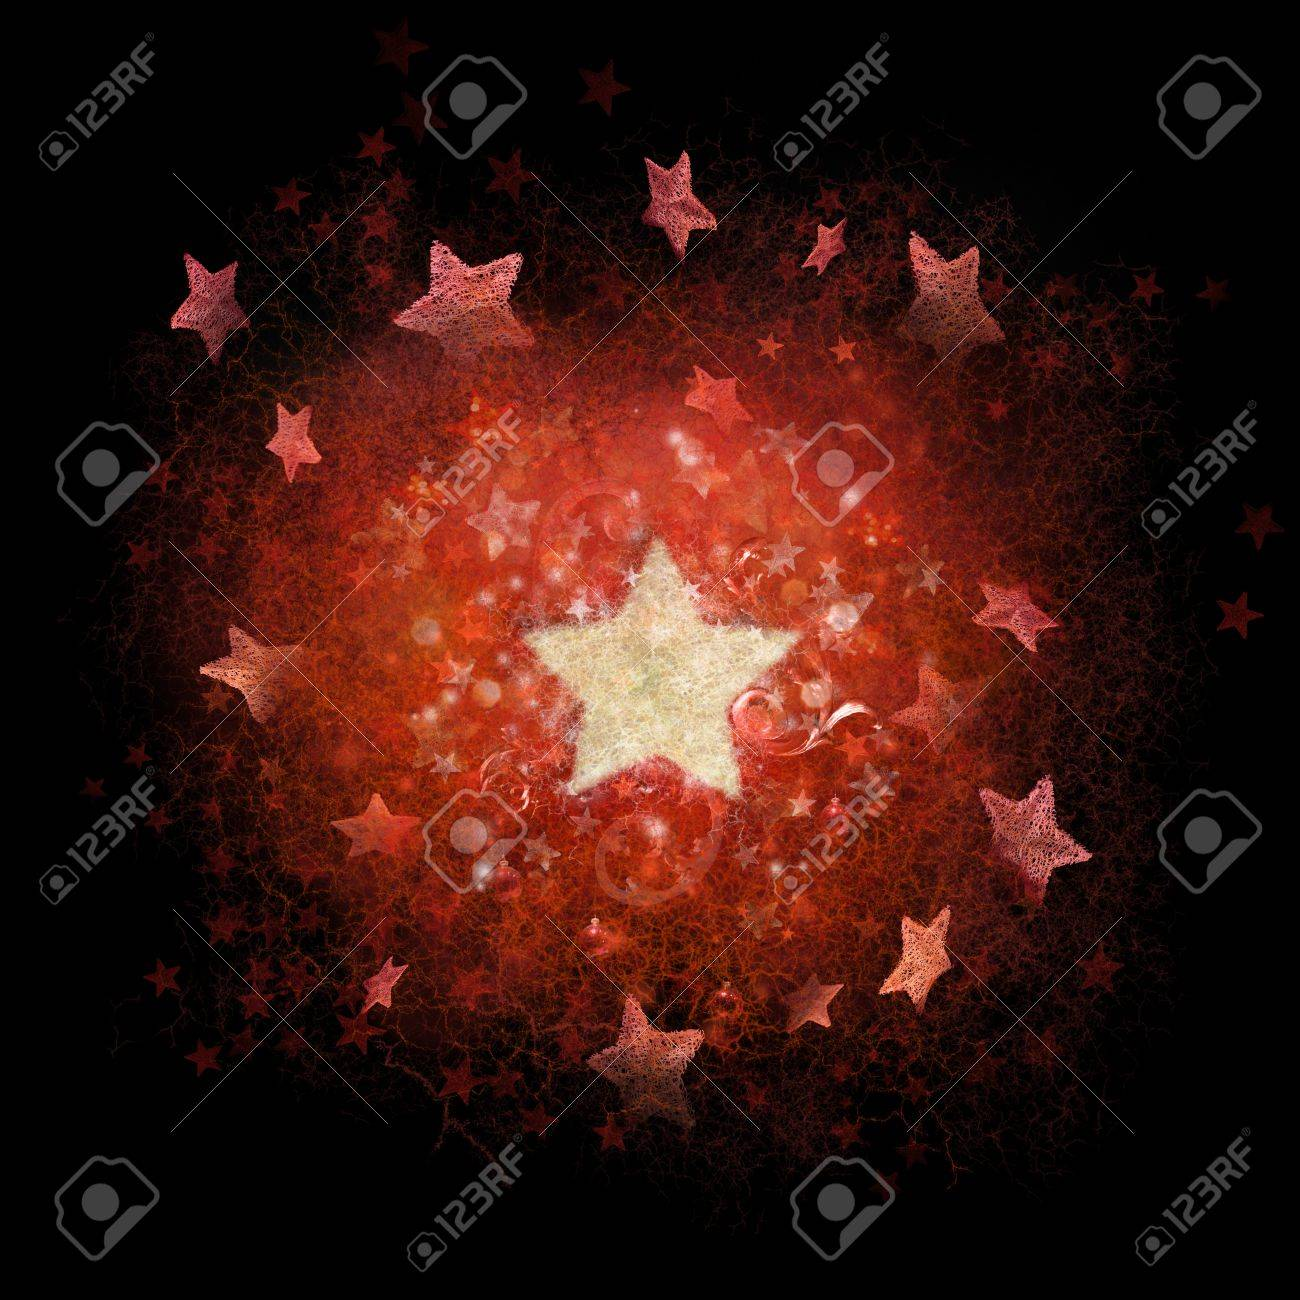 Layered red and white stars background with subtle line structures, photographed stars and ornaments around the big, white star Stock Photo - 13977713